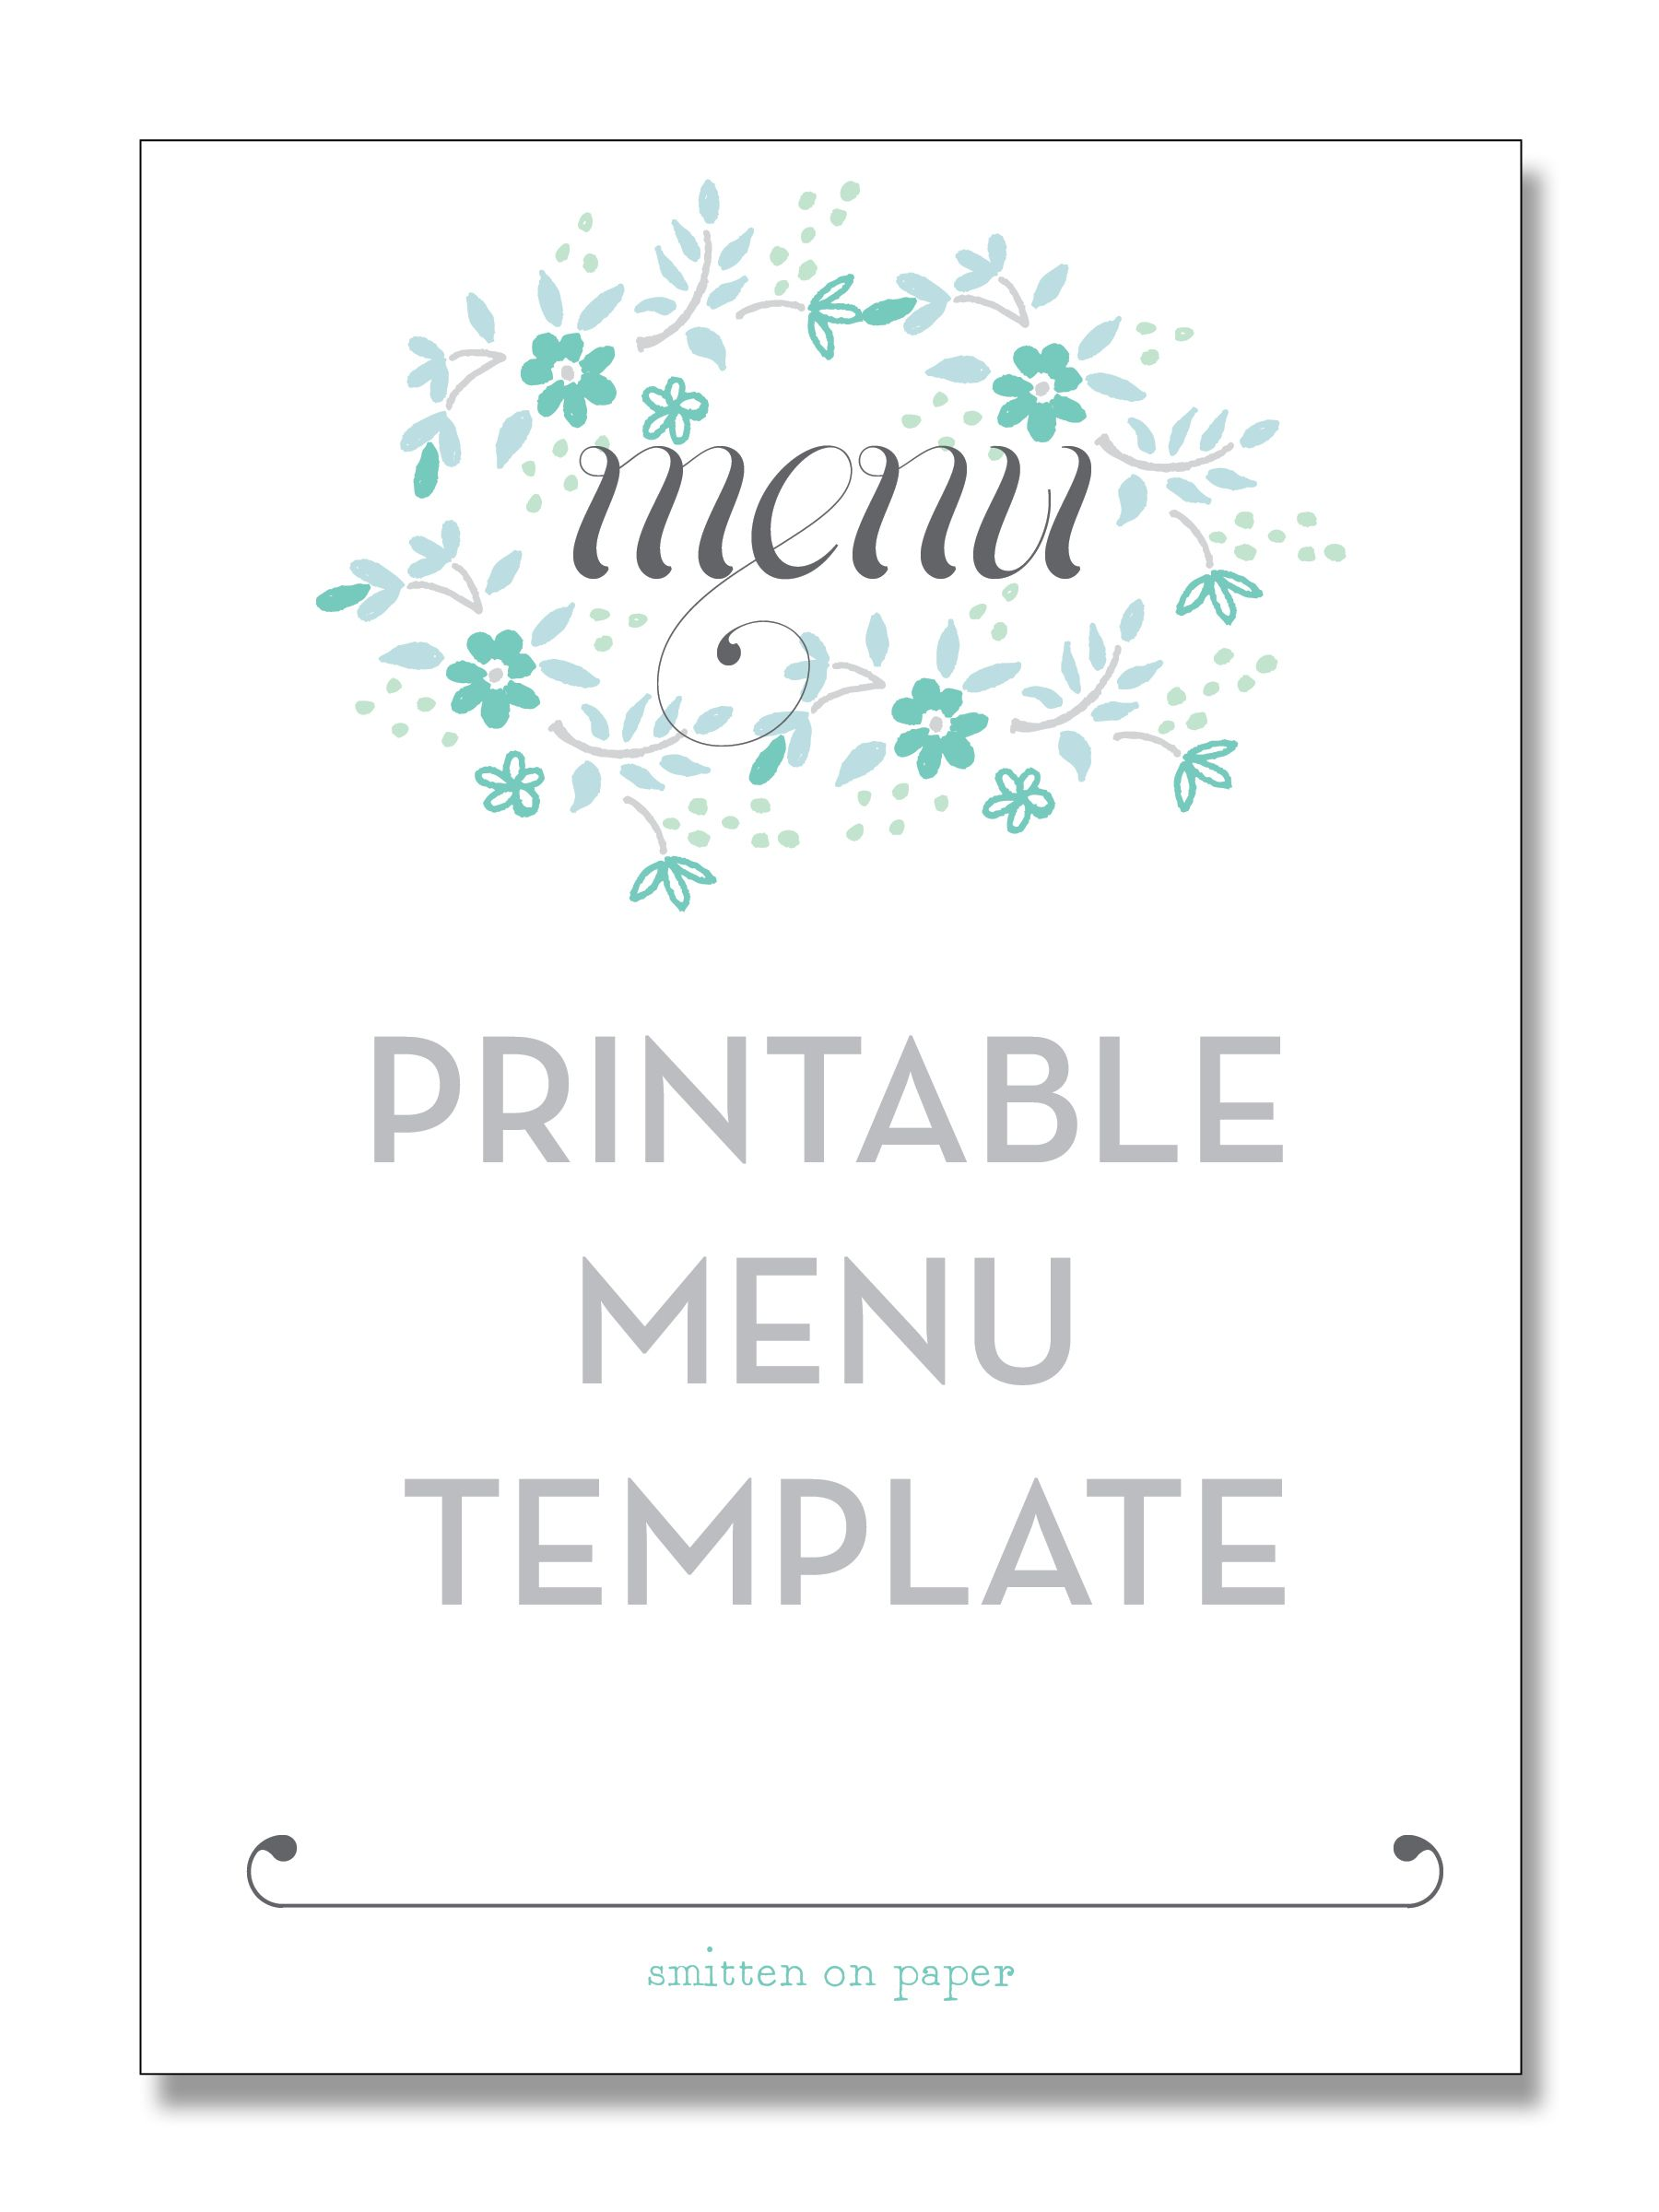 Freebie Friday: Printable Menu | Bbq | Pinterest | Printable menu